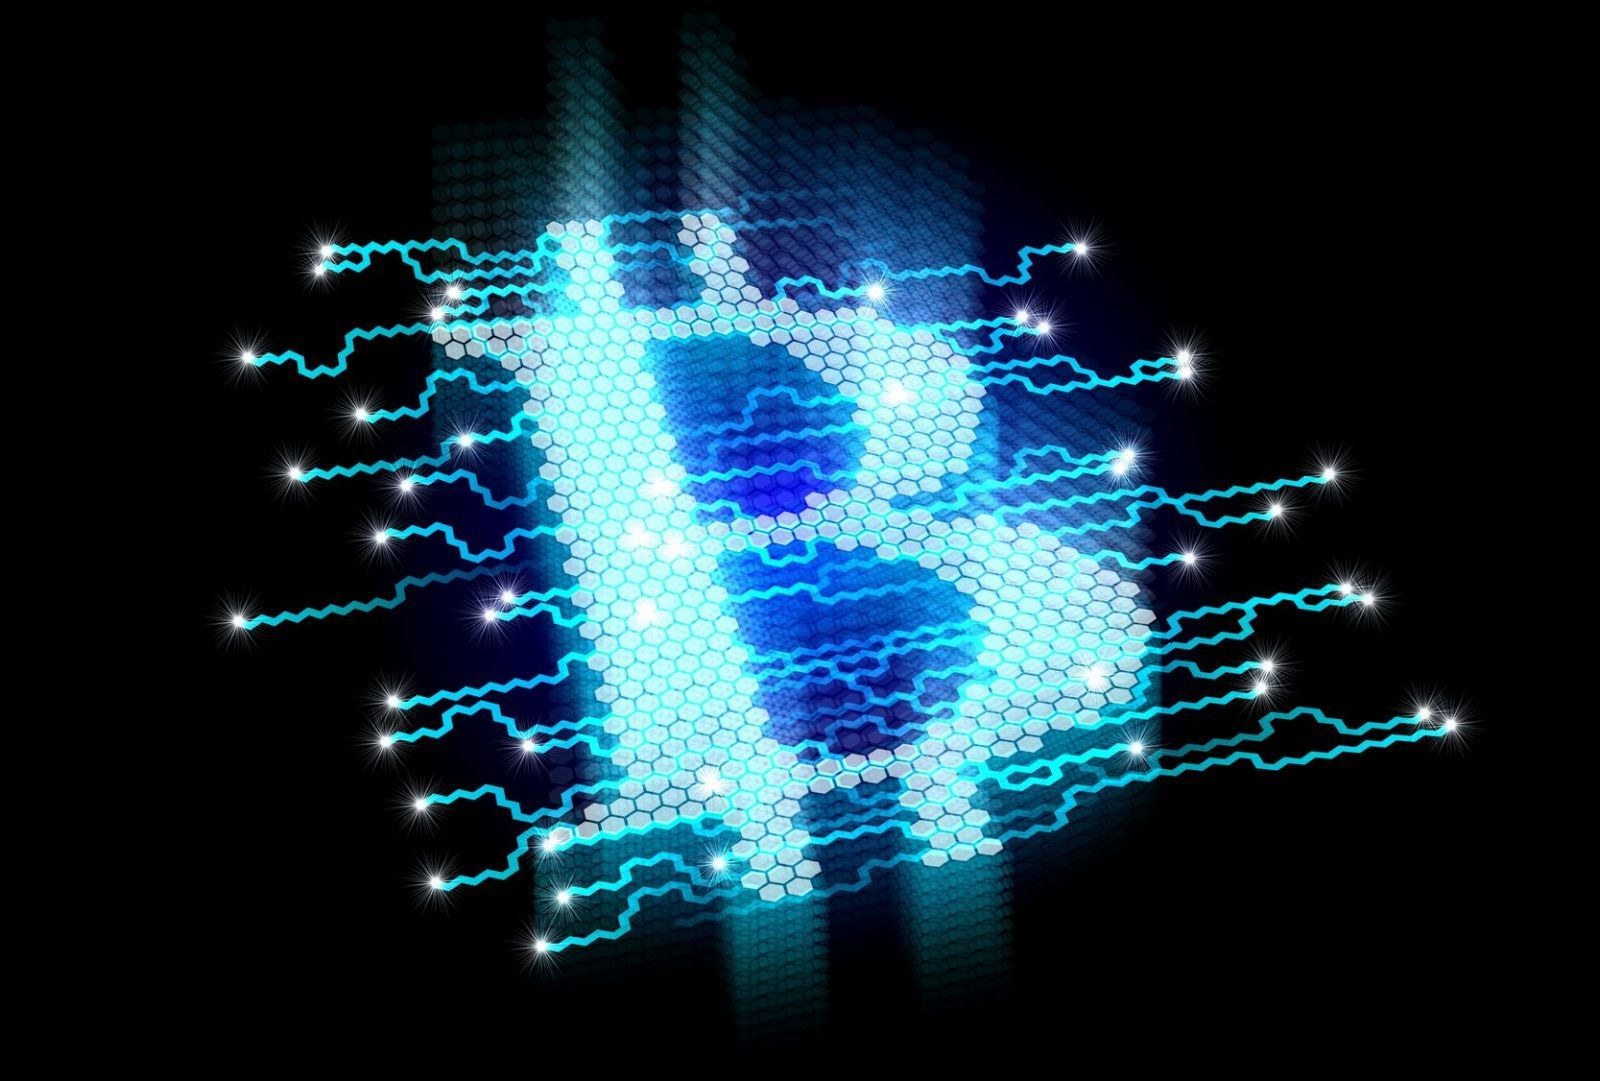 Bitcoin experienced a remarkable increase over the course of 2016, rising by 250% against the United States dollar in a twelve-month period.